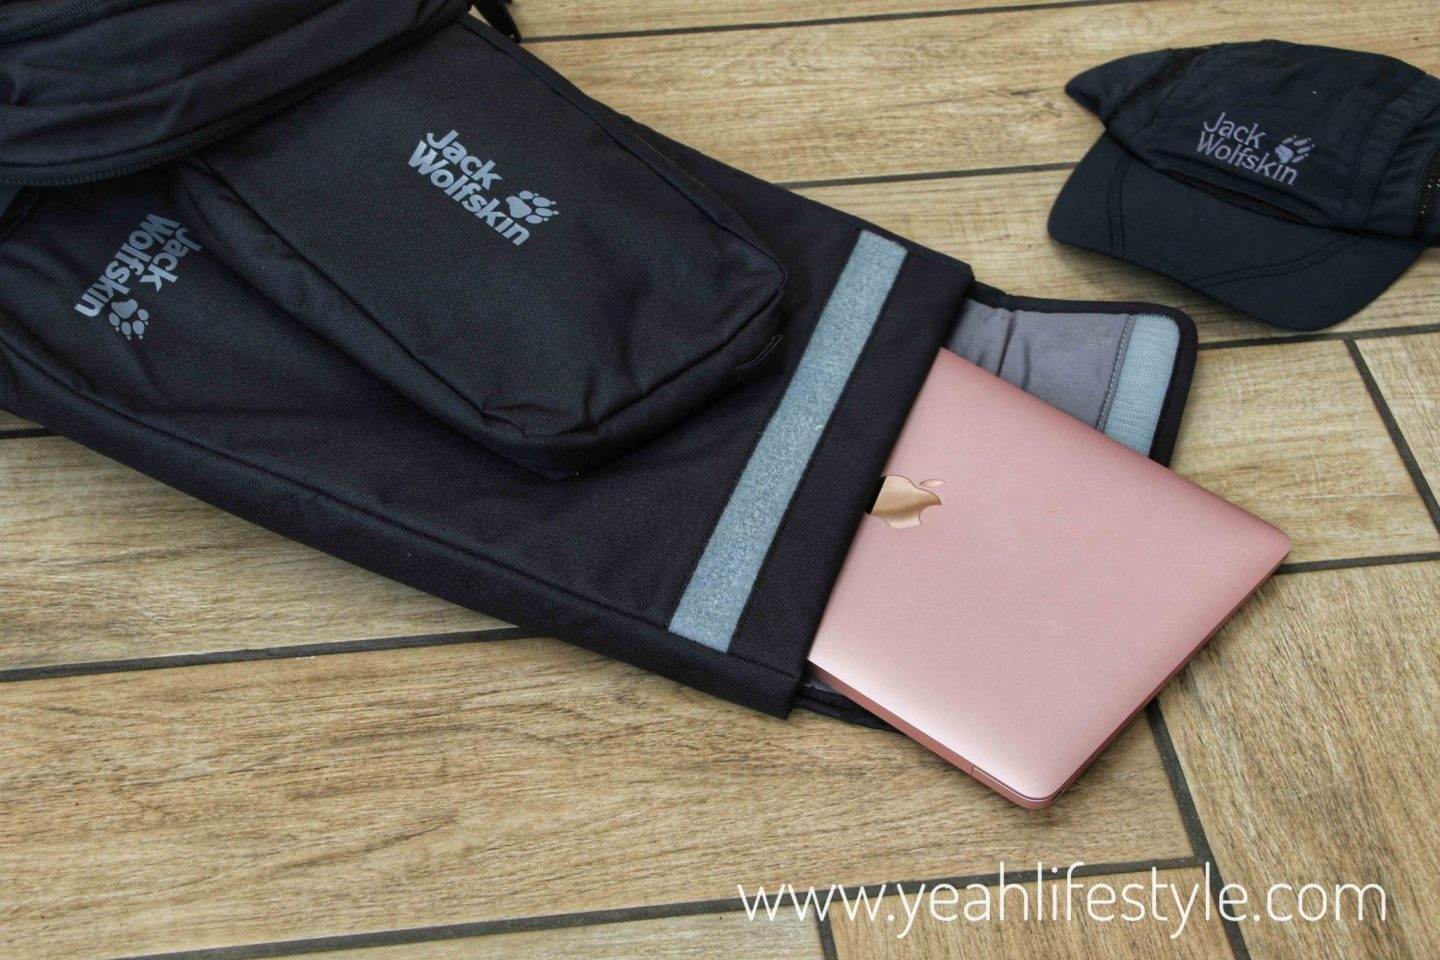 Simply-Hike-Jack-Wolfskin-Rucksack-Vent-Cap-Blogger-Review-Padded-ipad-pocket